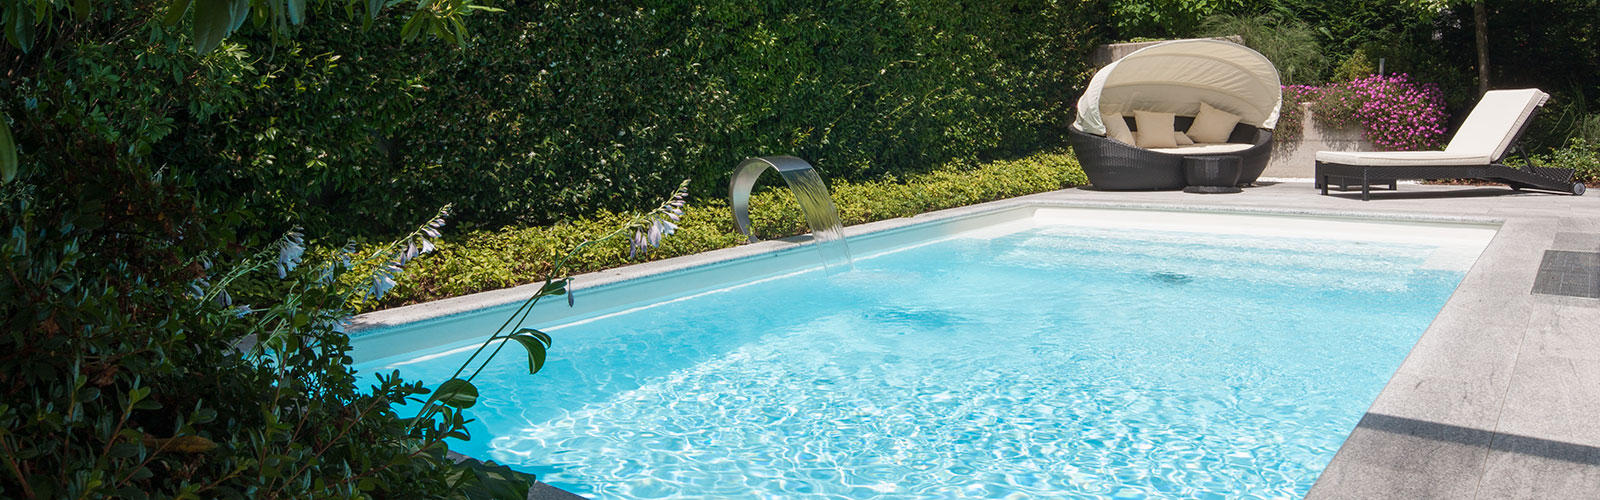 Vendiamo idromassaggi esterno e accessori per piscine for Accessori per piscine esterne